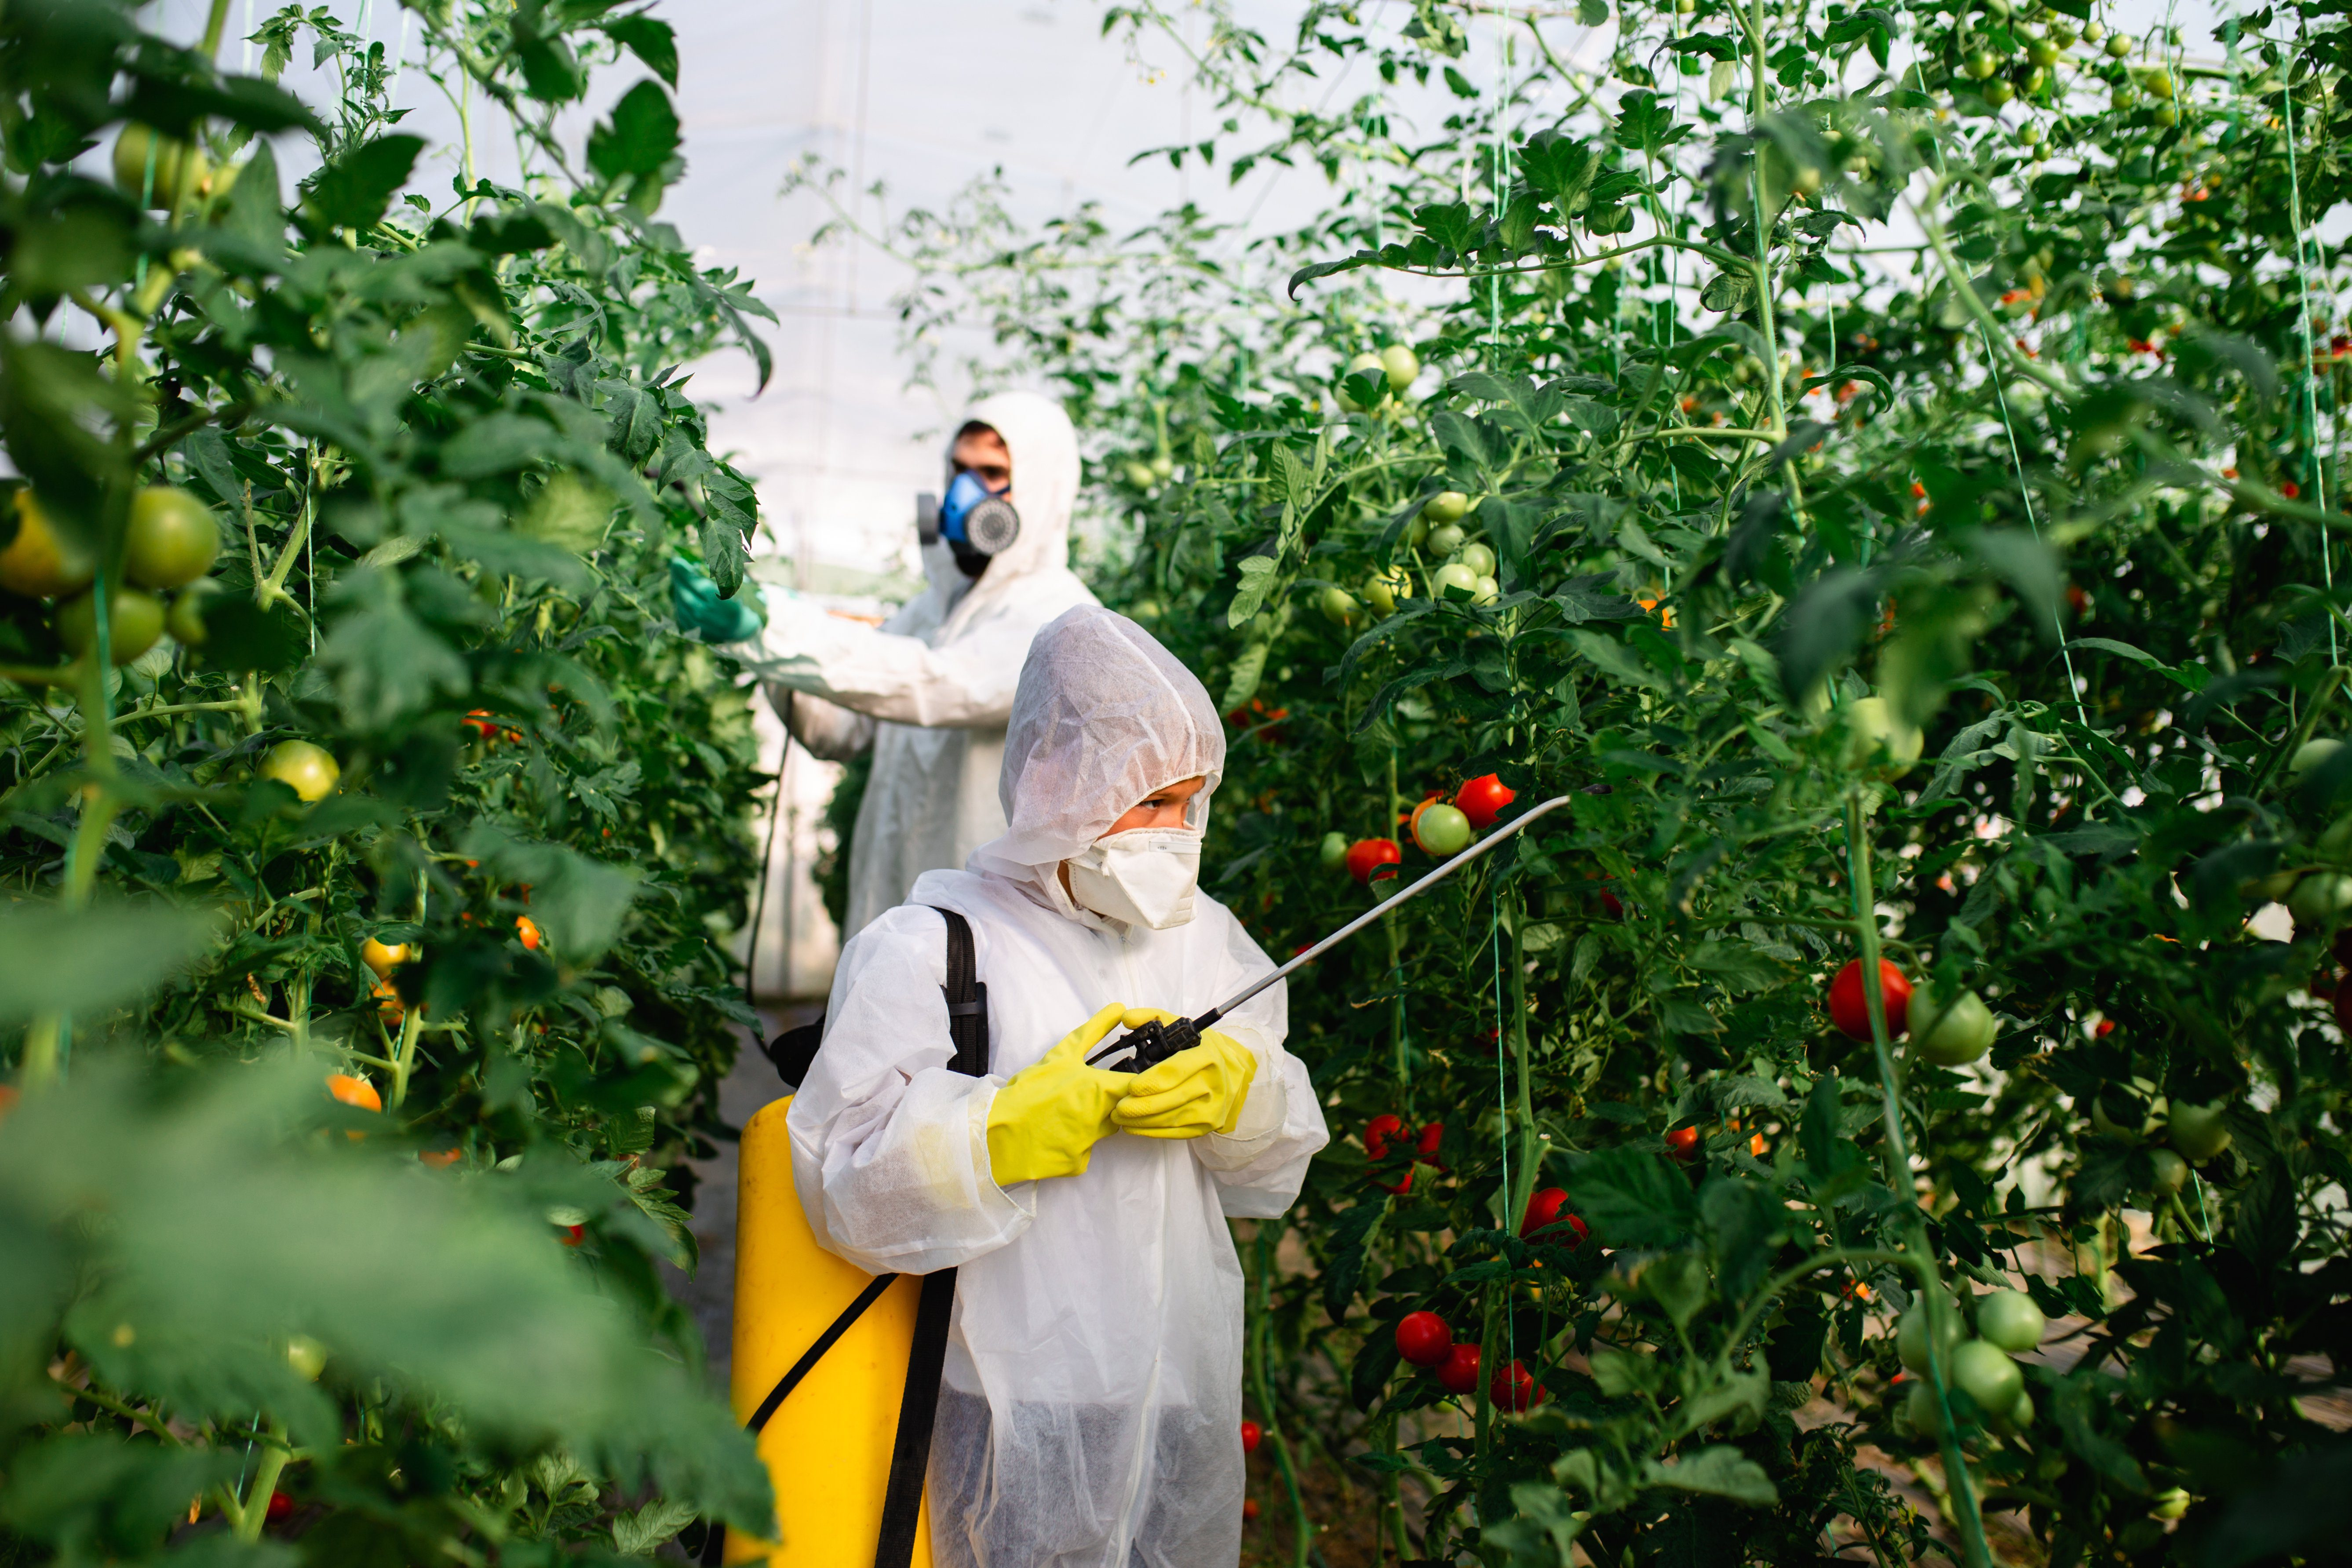 Father and son spraying organic pesticides on tomato plants in a greenhouse.